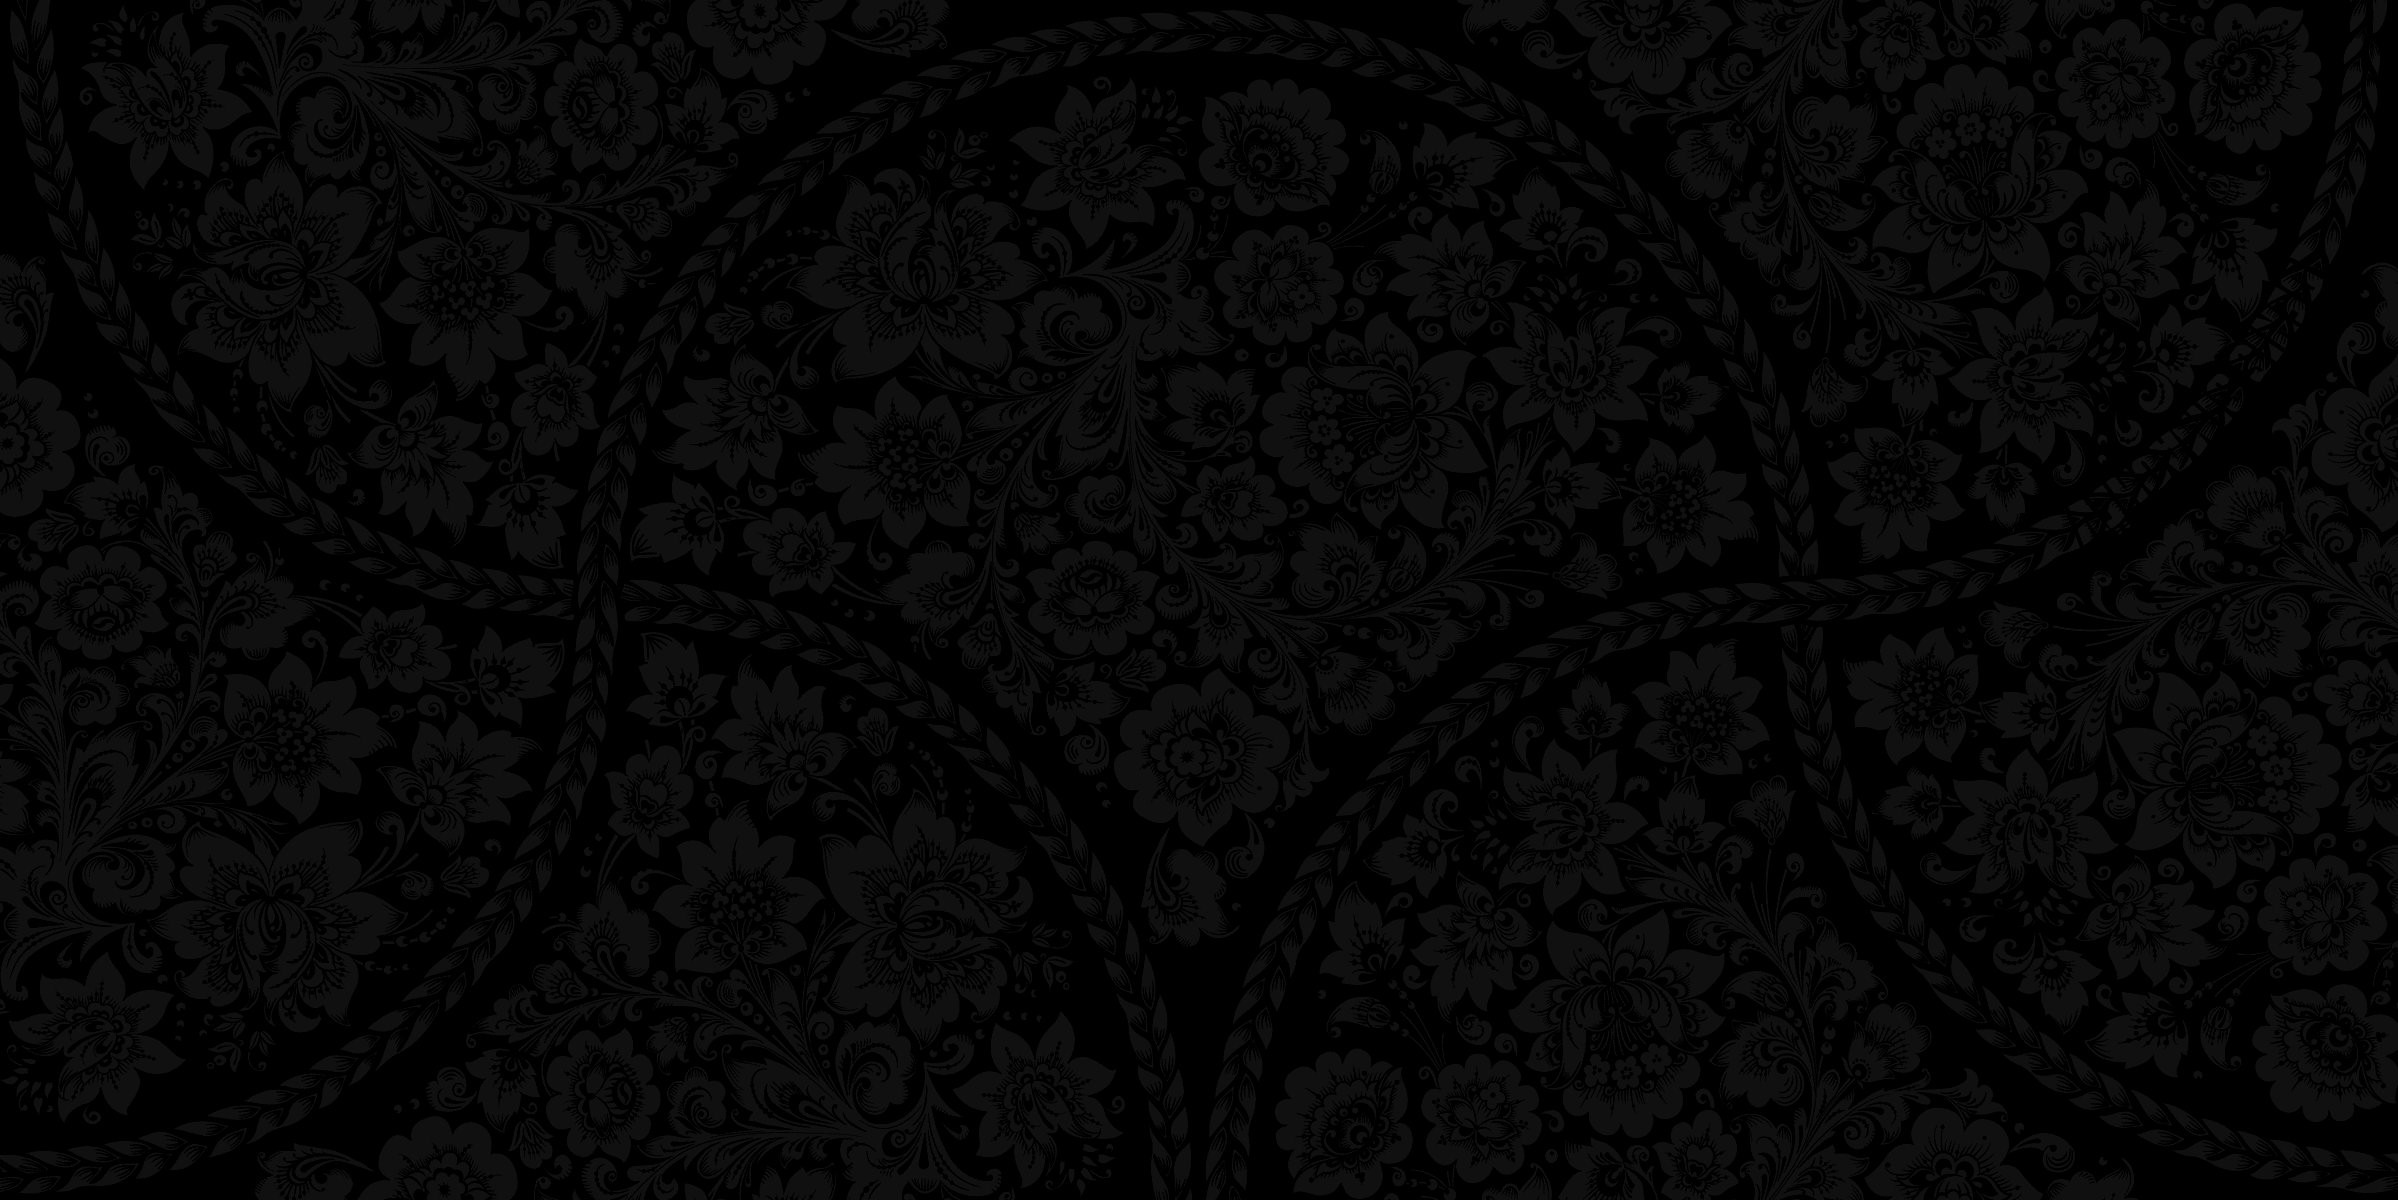 Black background tumblr download free wallpapers for for Dark pattern background